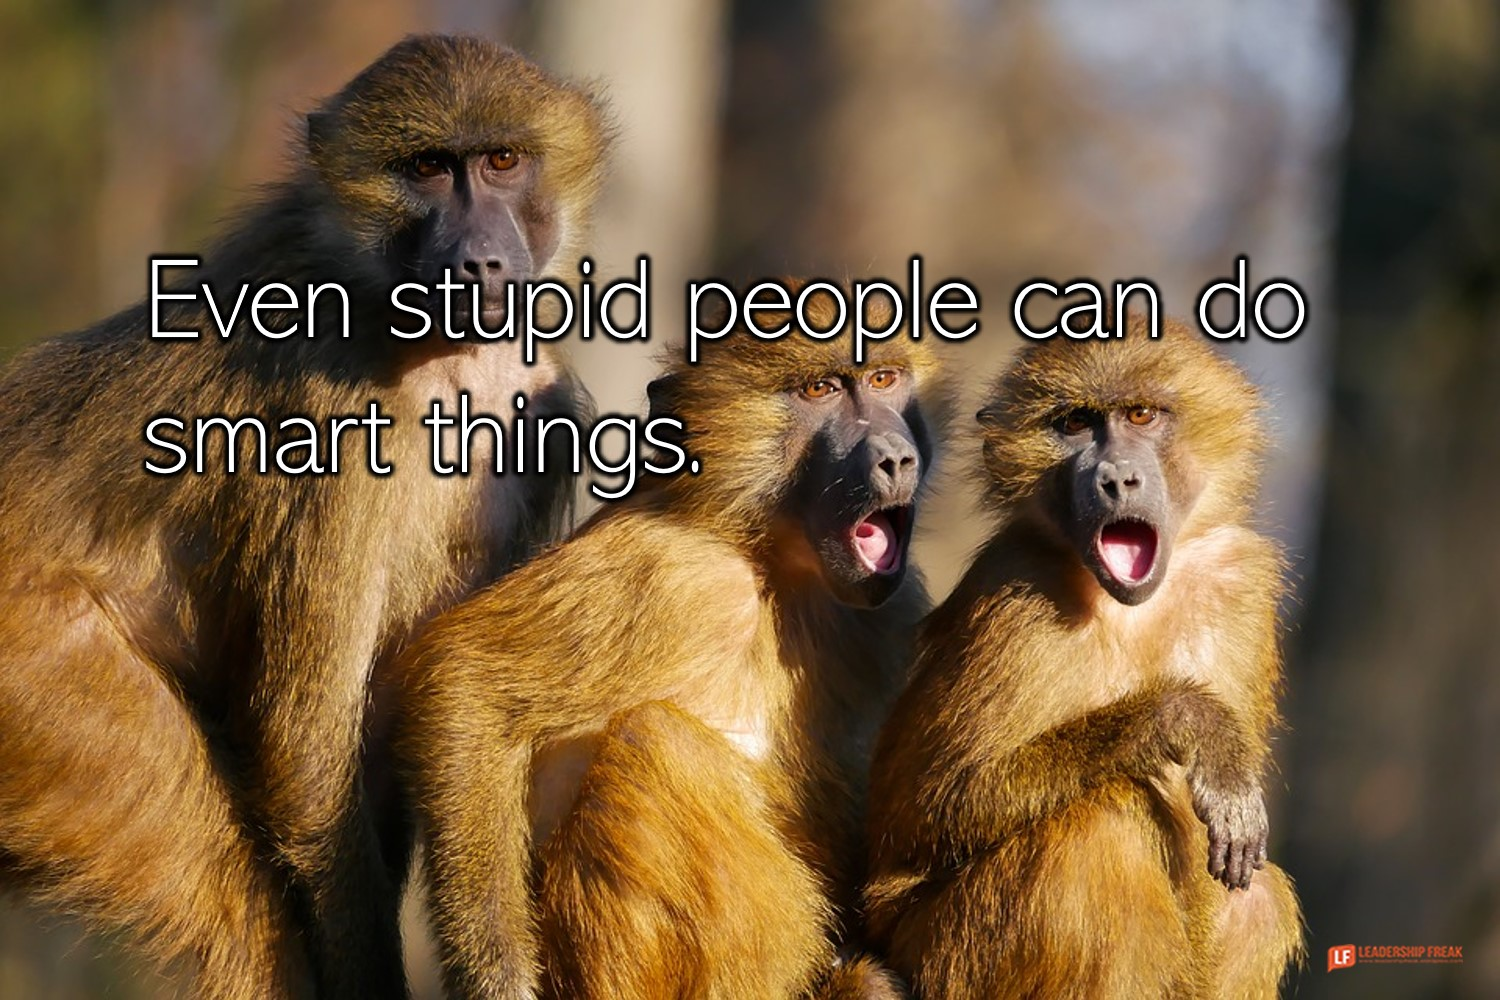 Monkeys  Even stupid people can do smart things.